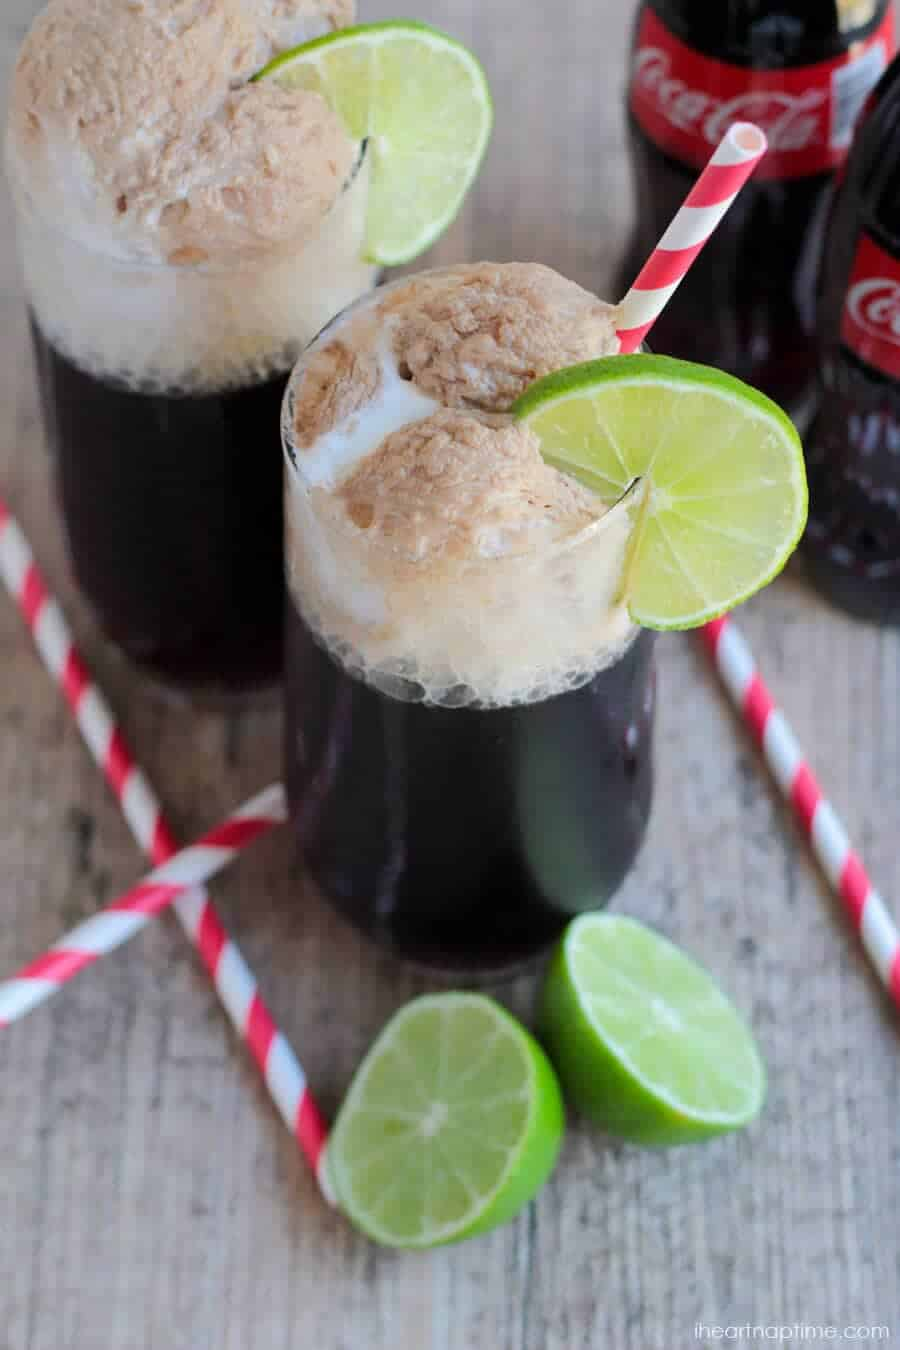 A close up of a coke float with a lime wedge and striped straw